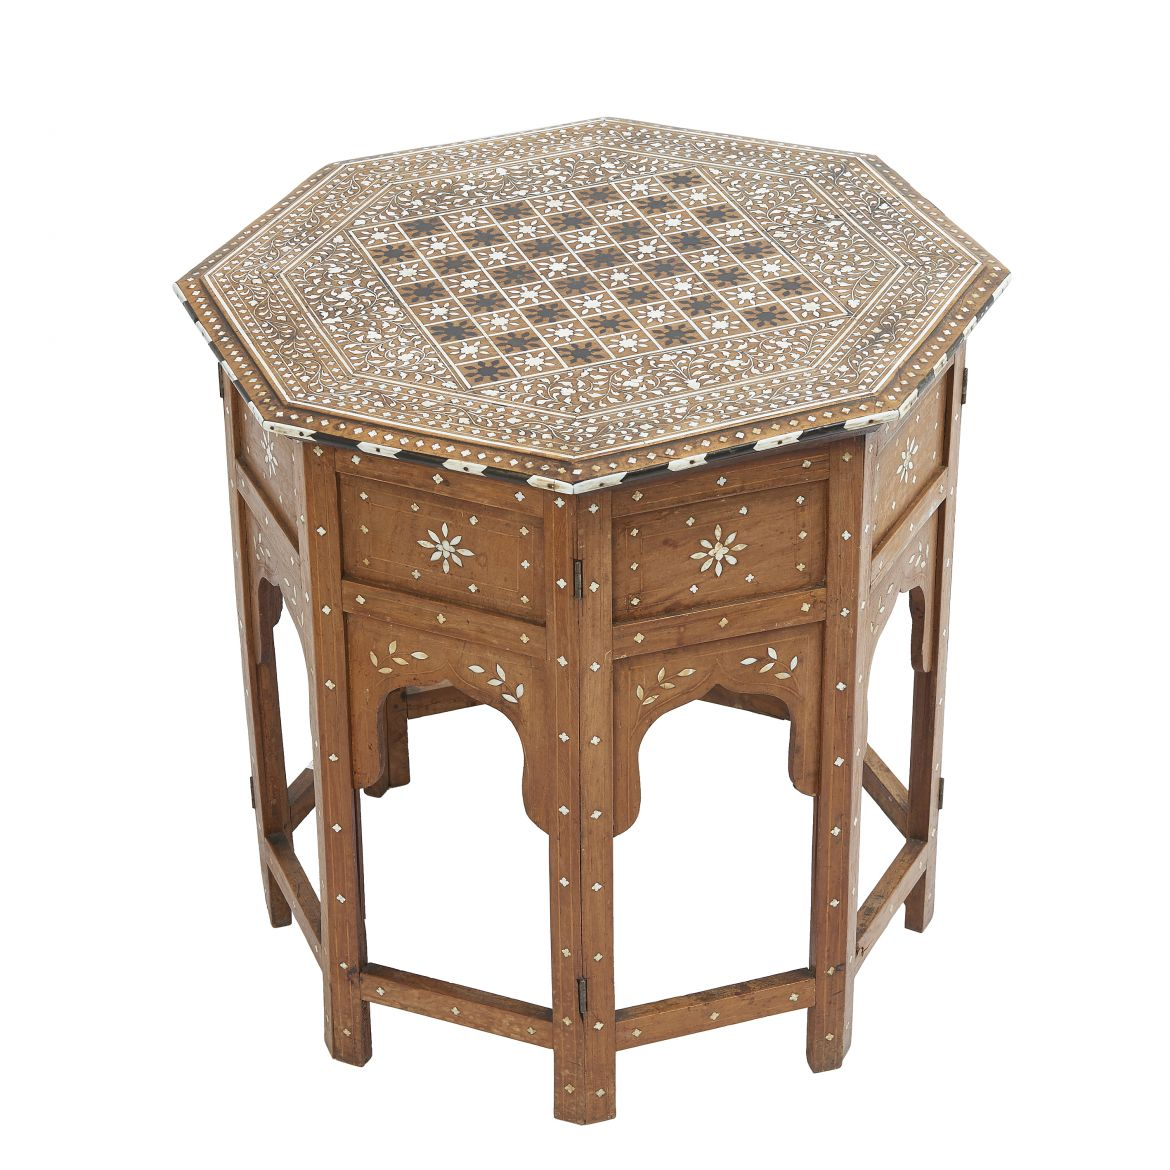 Indian Arabesque Octagonal Table